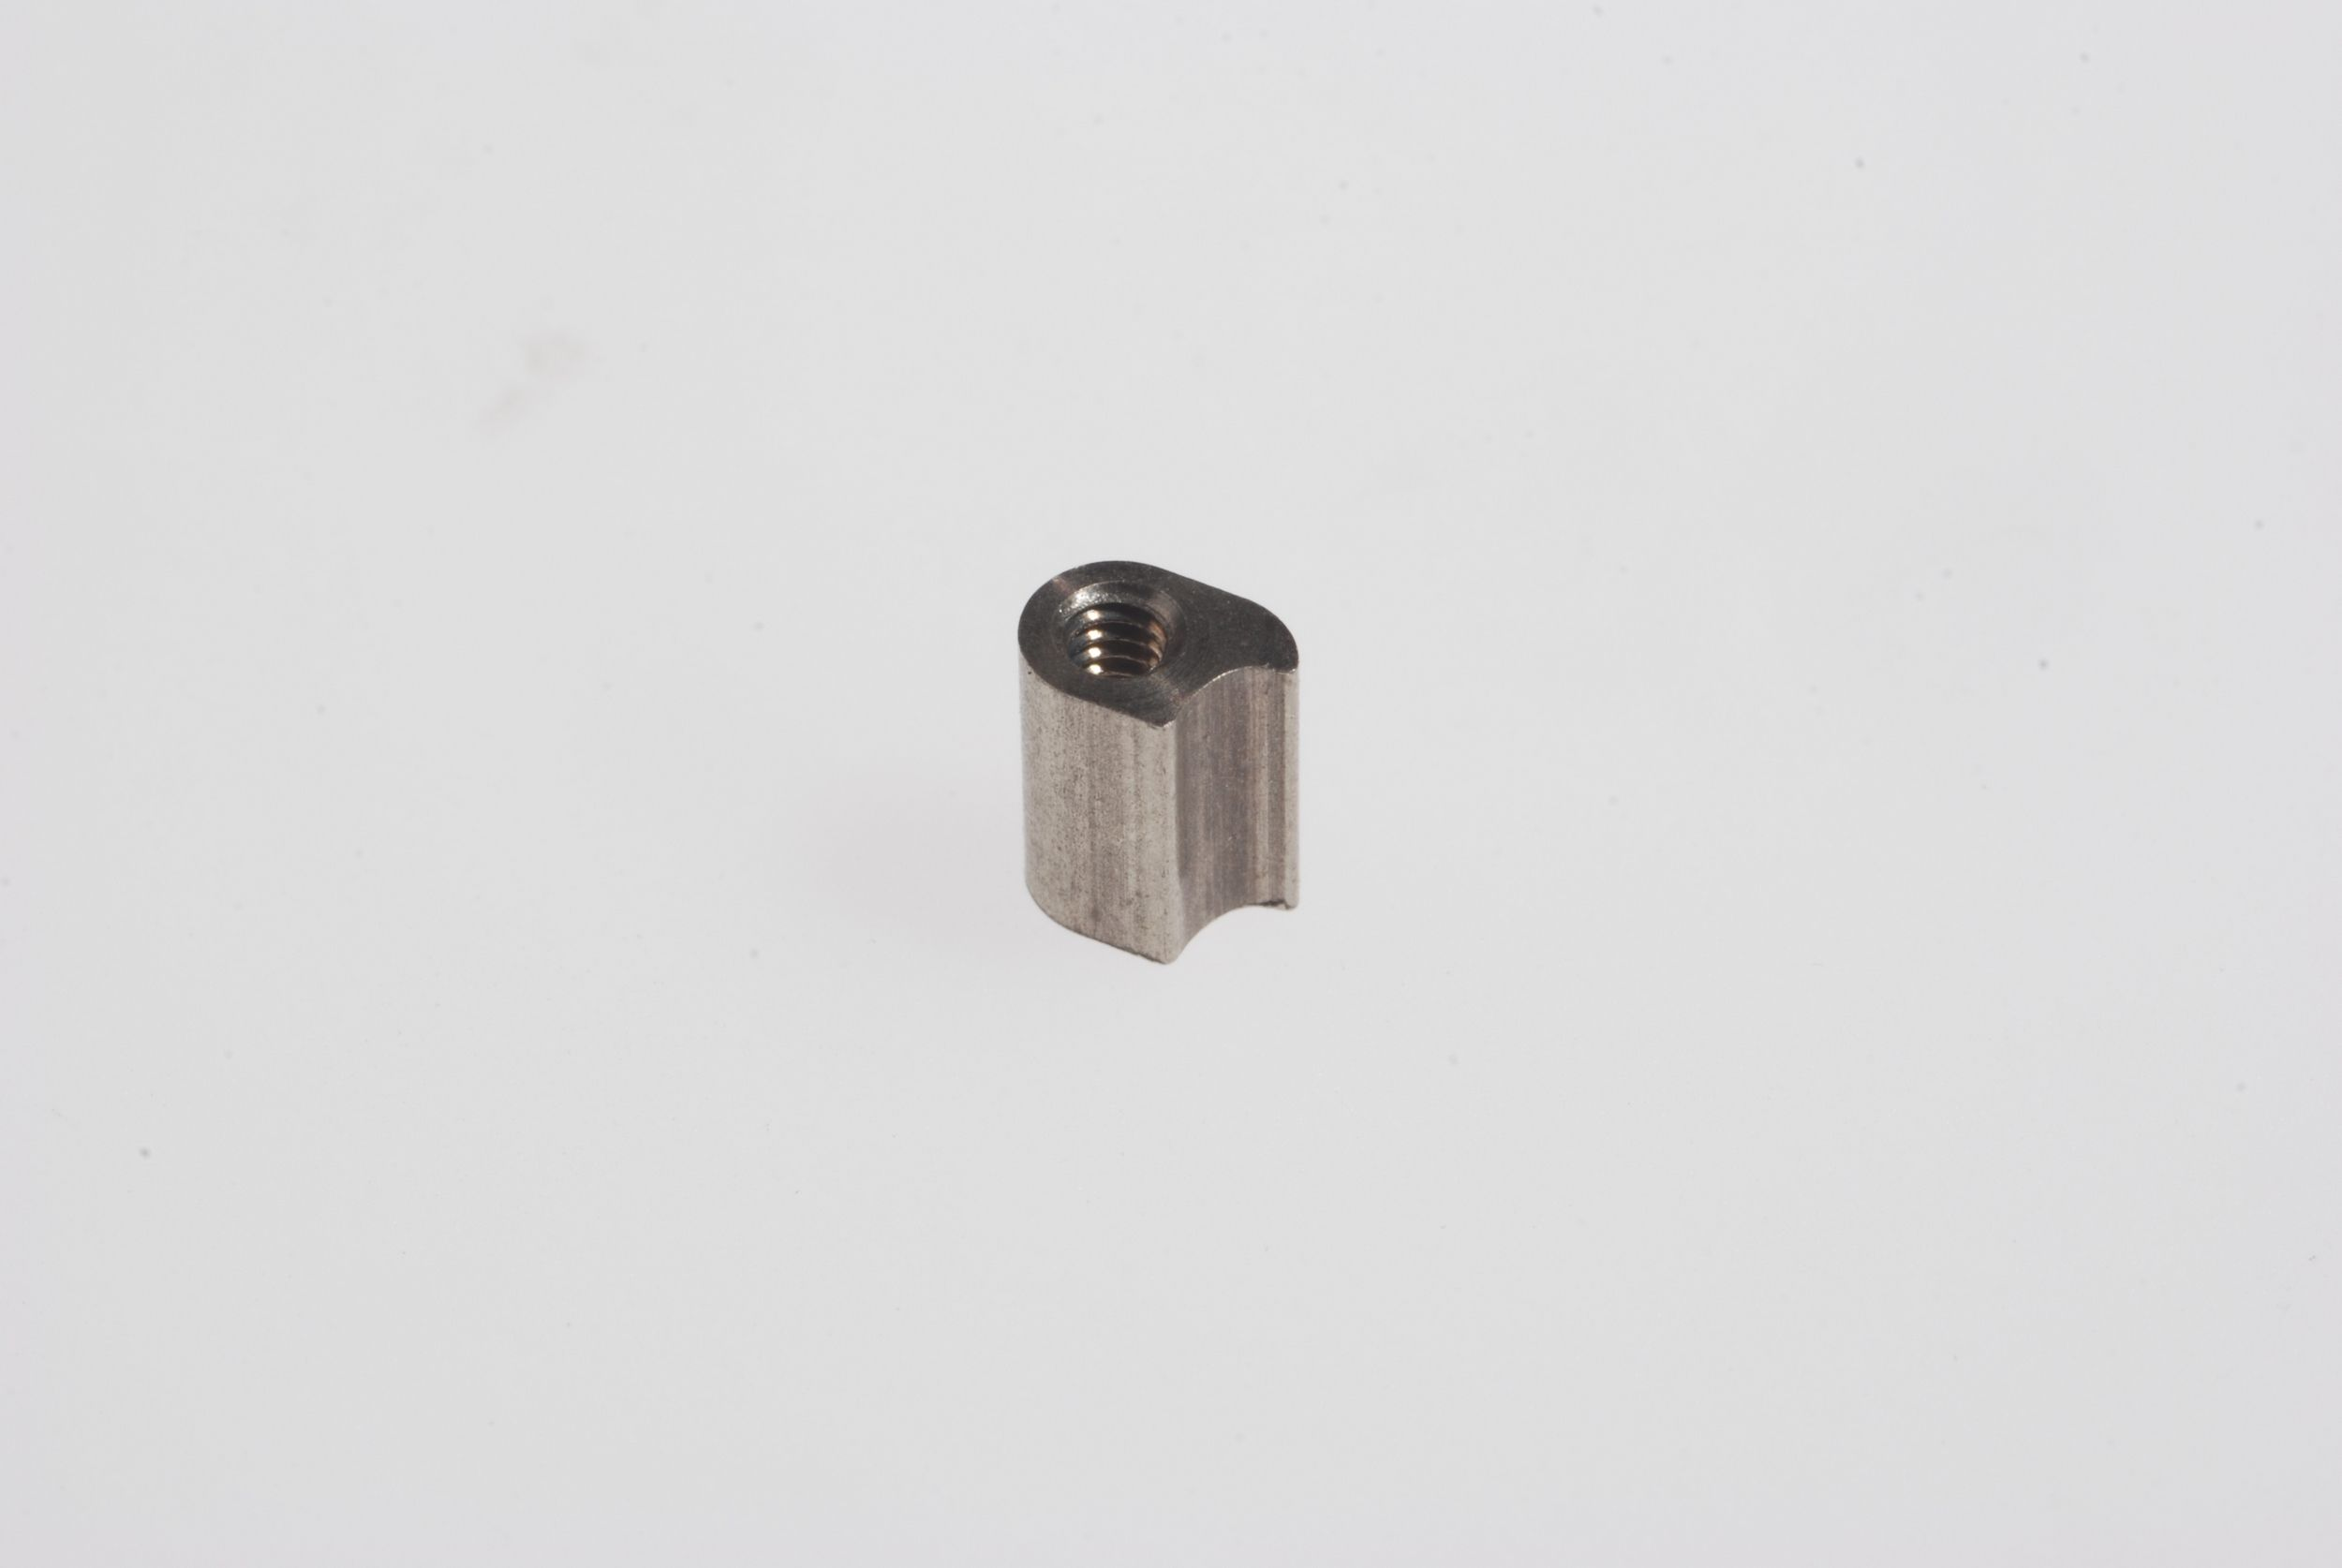 Stainless steel offset pivot machining